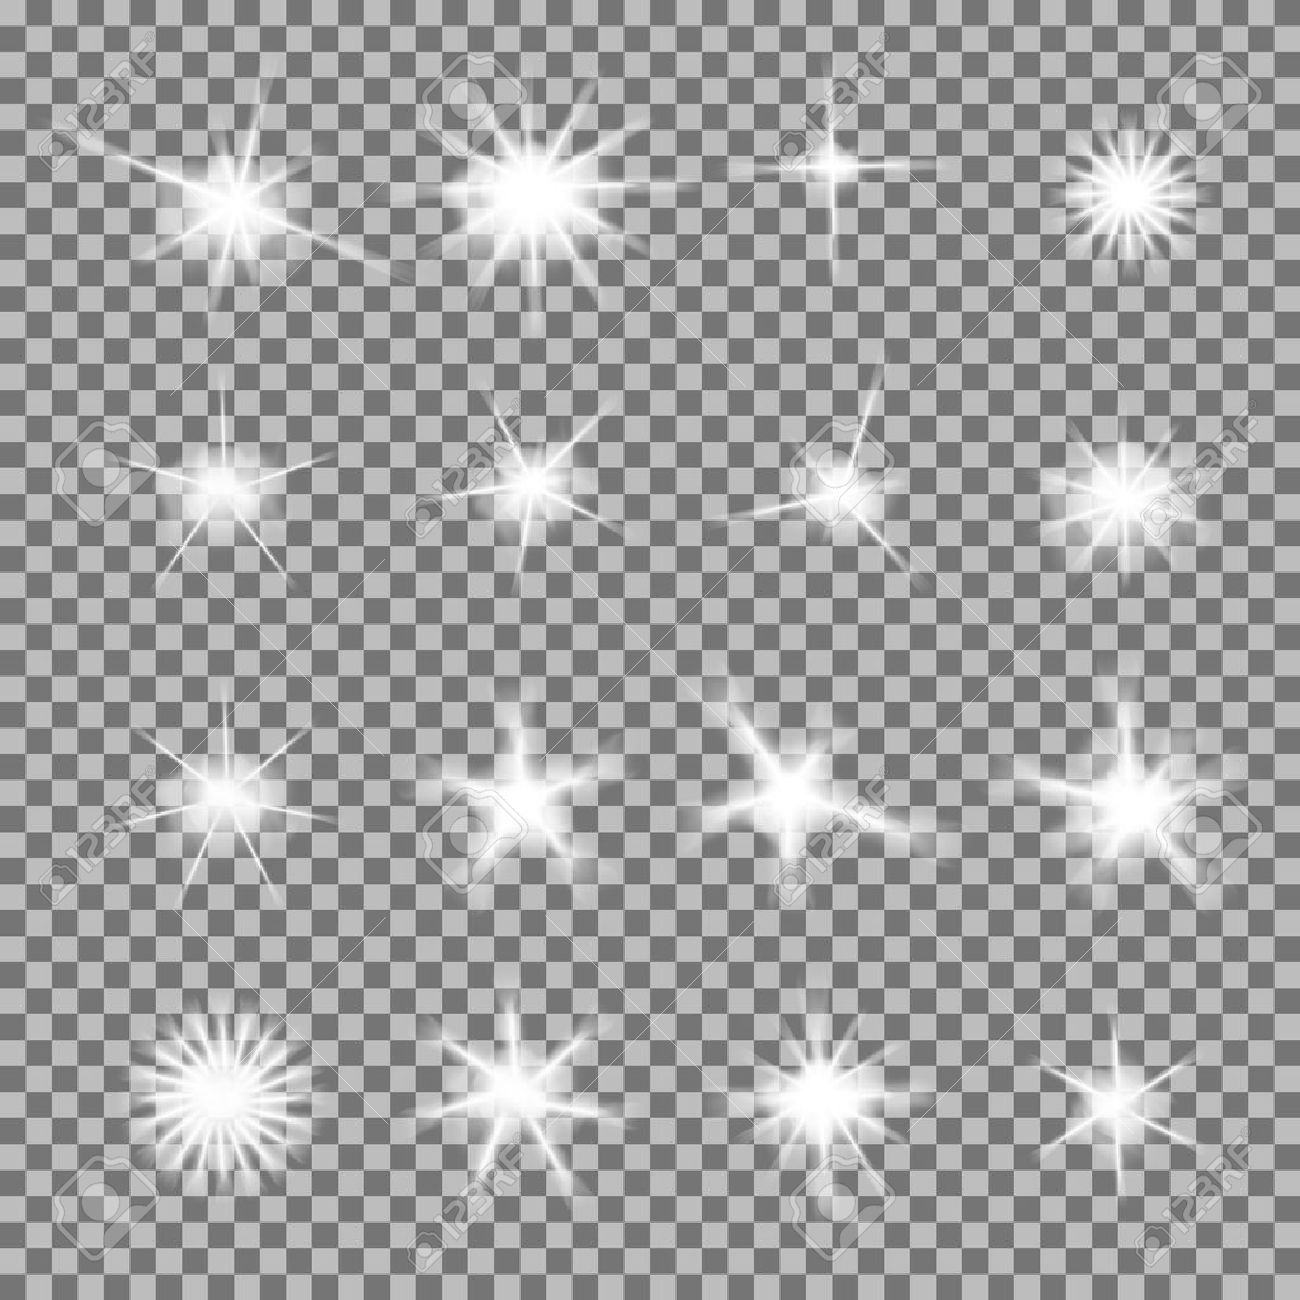 Vector set of glowing light bursts with sparkles on transparent background. Transparent gradient stars, lightning flare. Magic, bright, natural effects. Abstract texture for your design and business. - 48206116